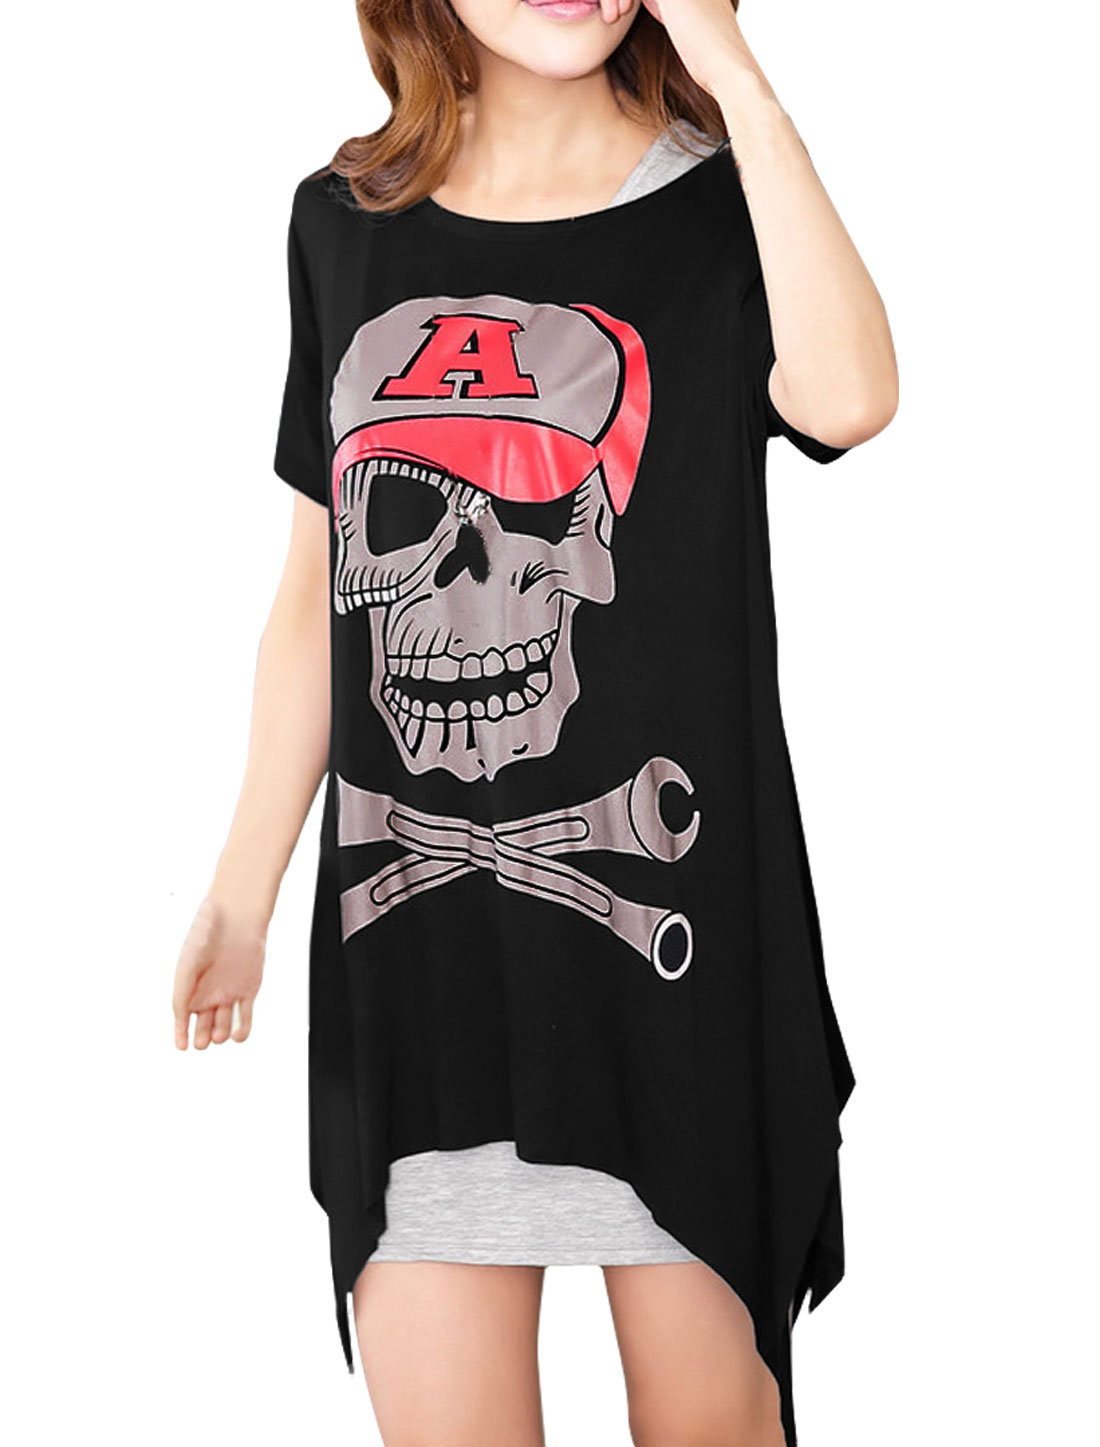 Ladies Black Short Sleeves Cut Out Back Skull Pattern Front Tunic Shirt M